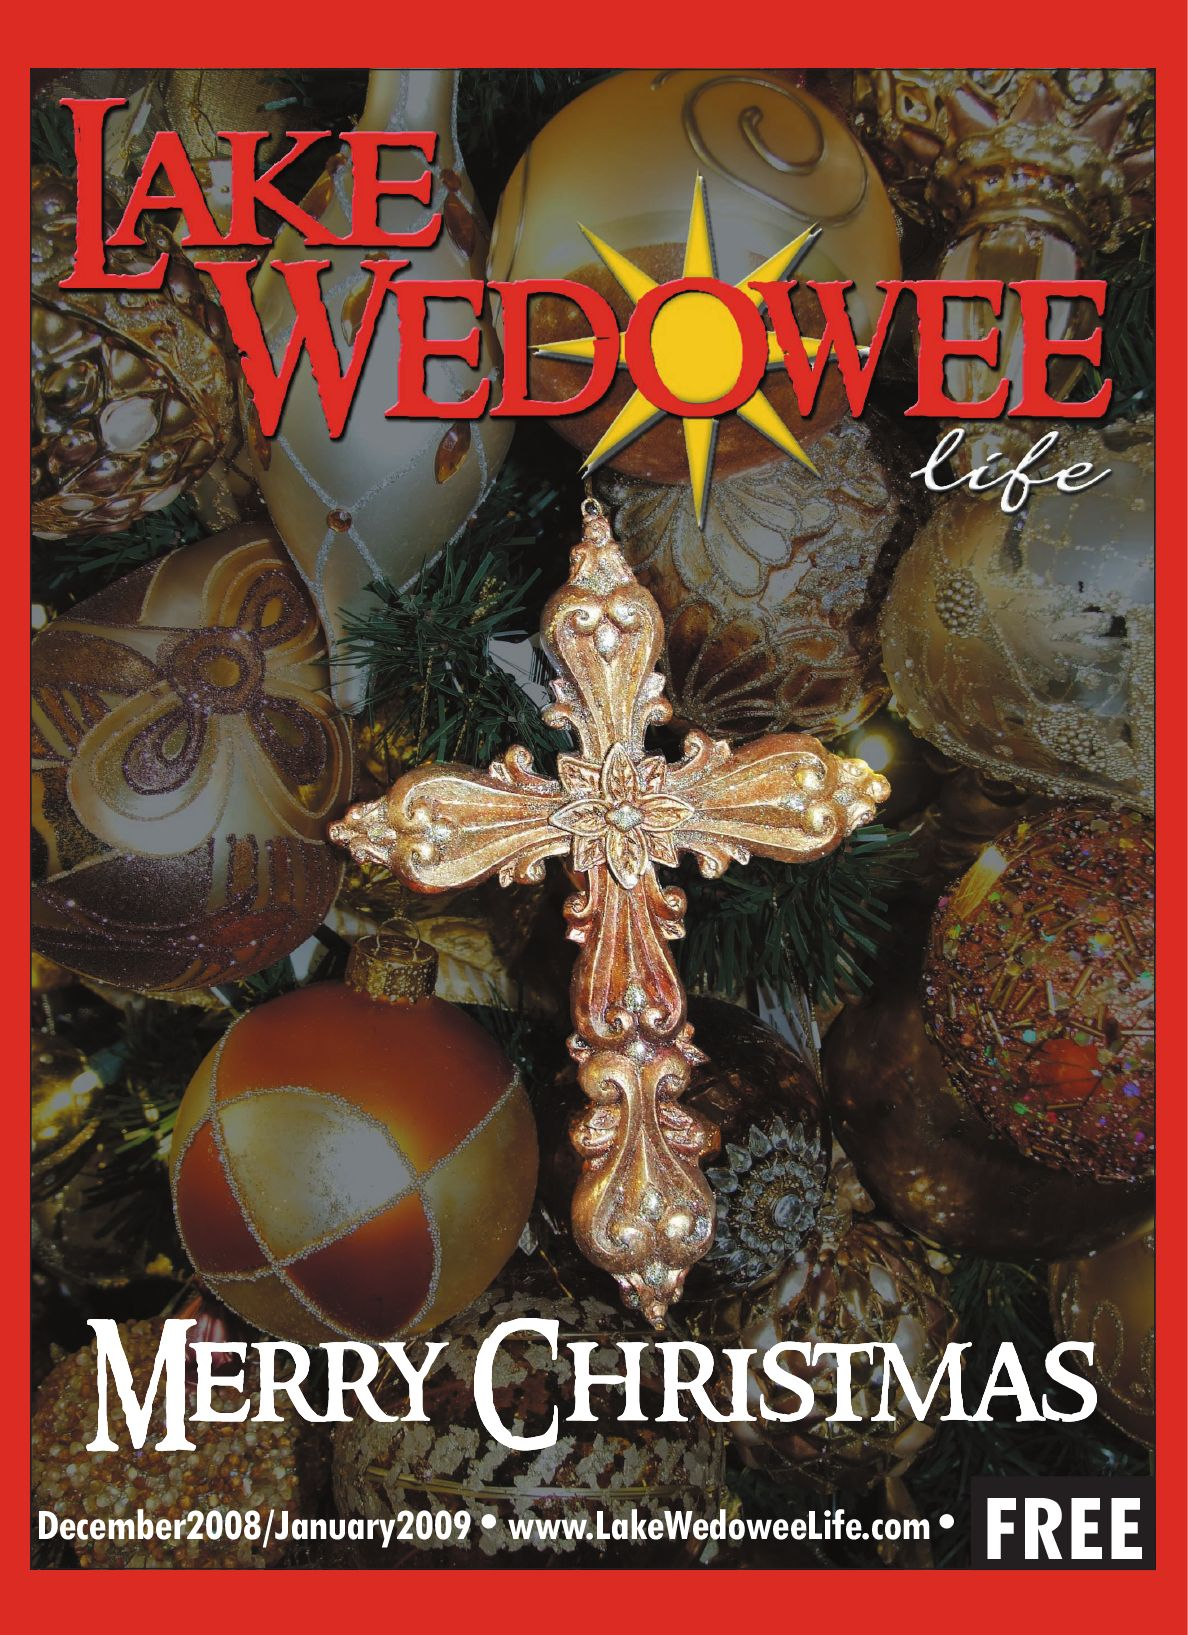 Lake wedowee life magazine by lake wedowee life issuu for Wedowee lake level